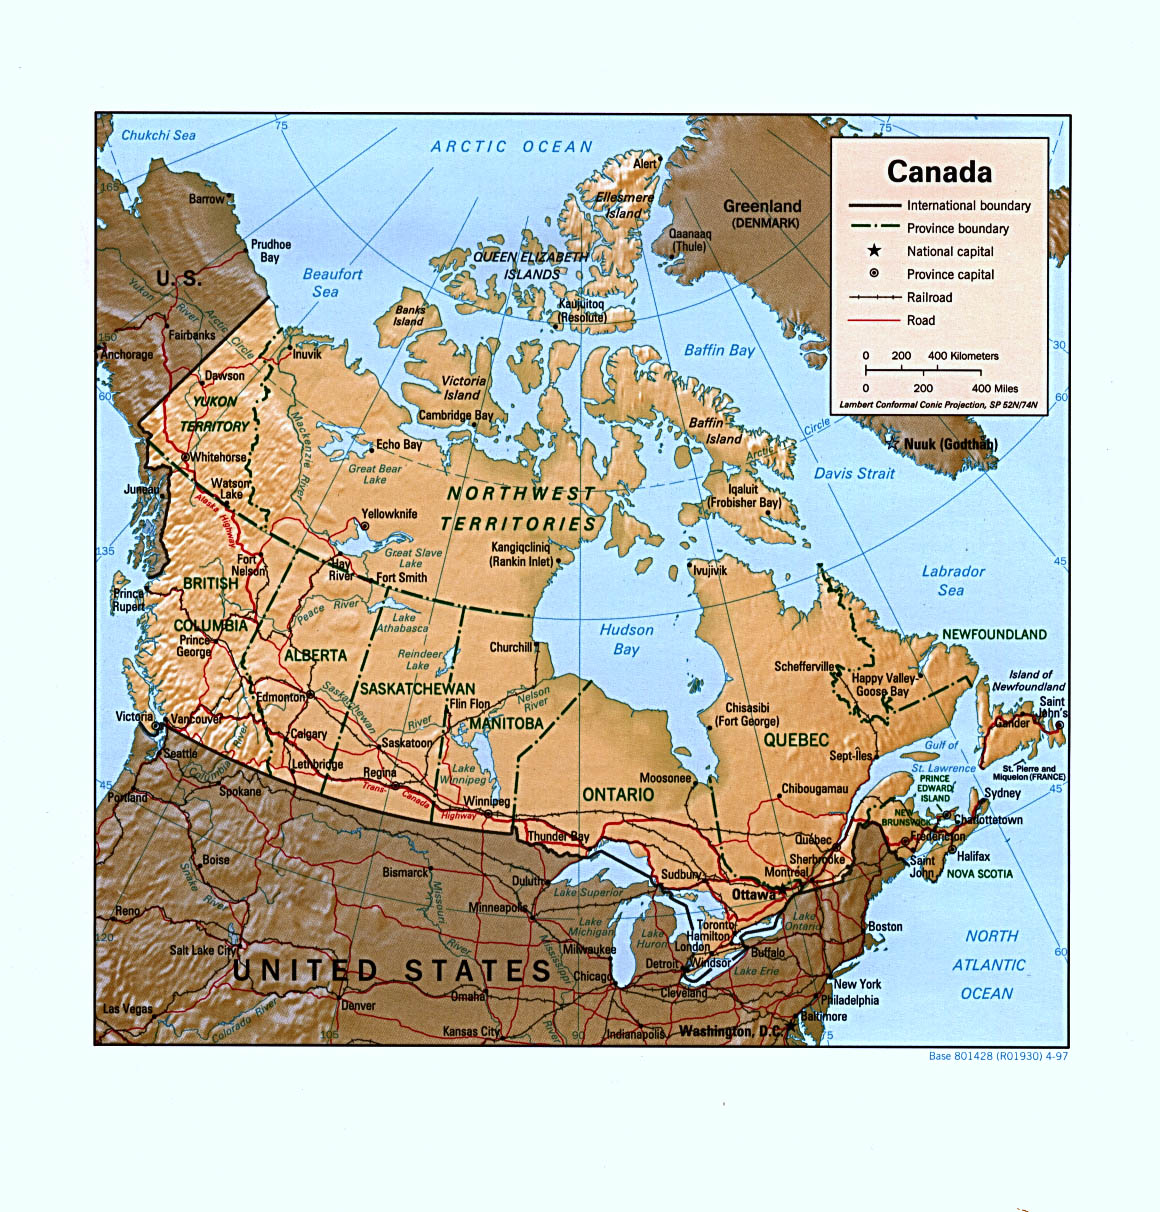 Map Usa And Canada With Cities on map of southern ontario cities, map of usa with states and cities, usa map with capital cities, map of canada showing cities, time in different cities, usa canada mexico map, usa map with state names, usa america map, usa map minnesota, usa maps united states, usa canada border map, canada map capital cities, us maps united states and cities,